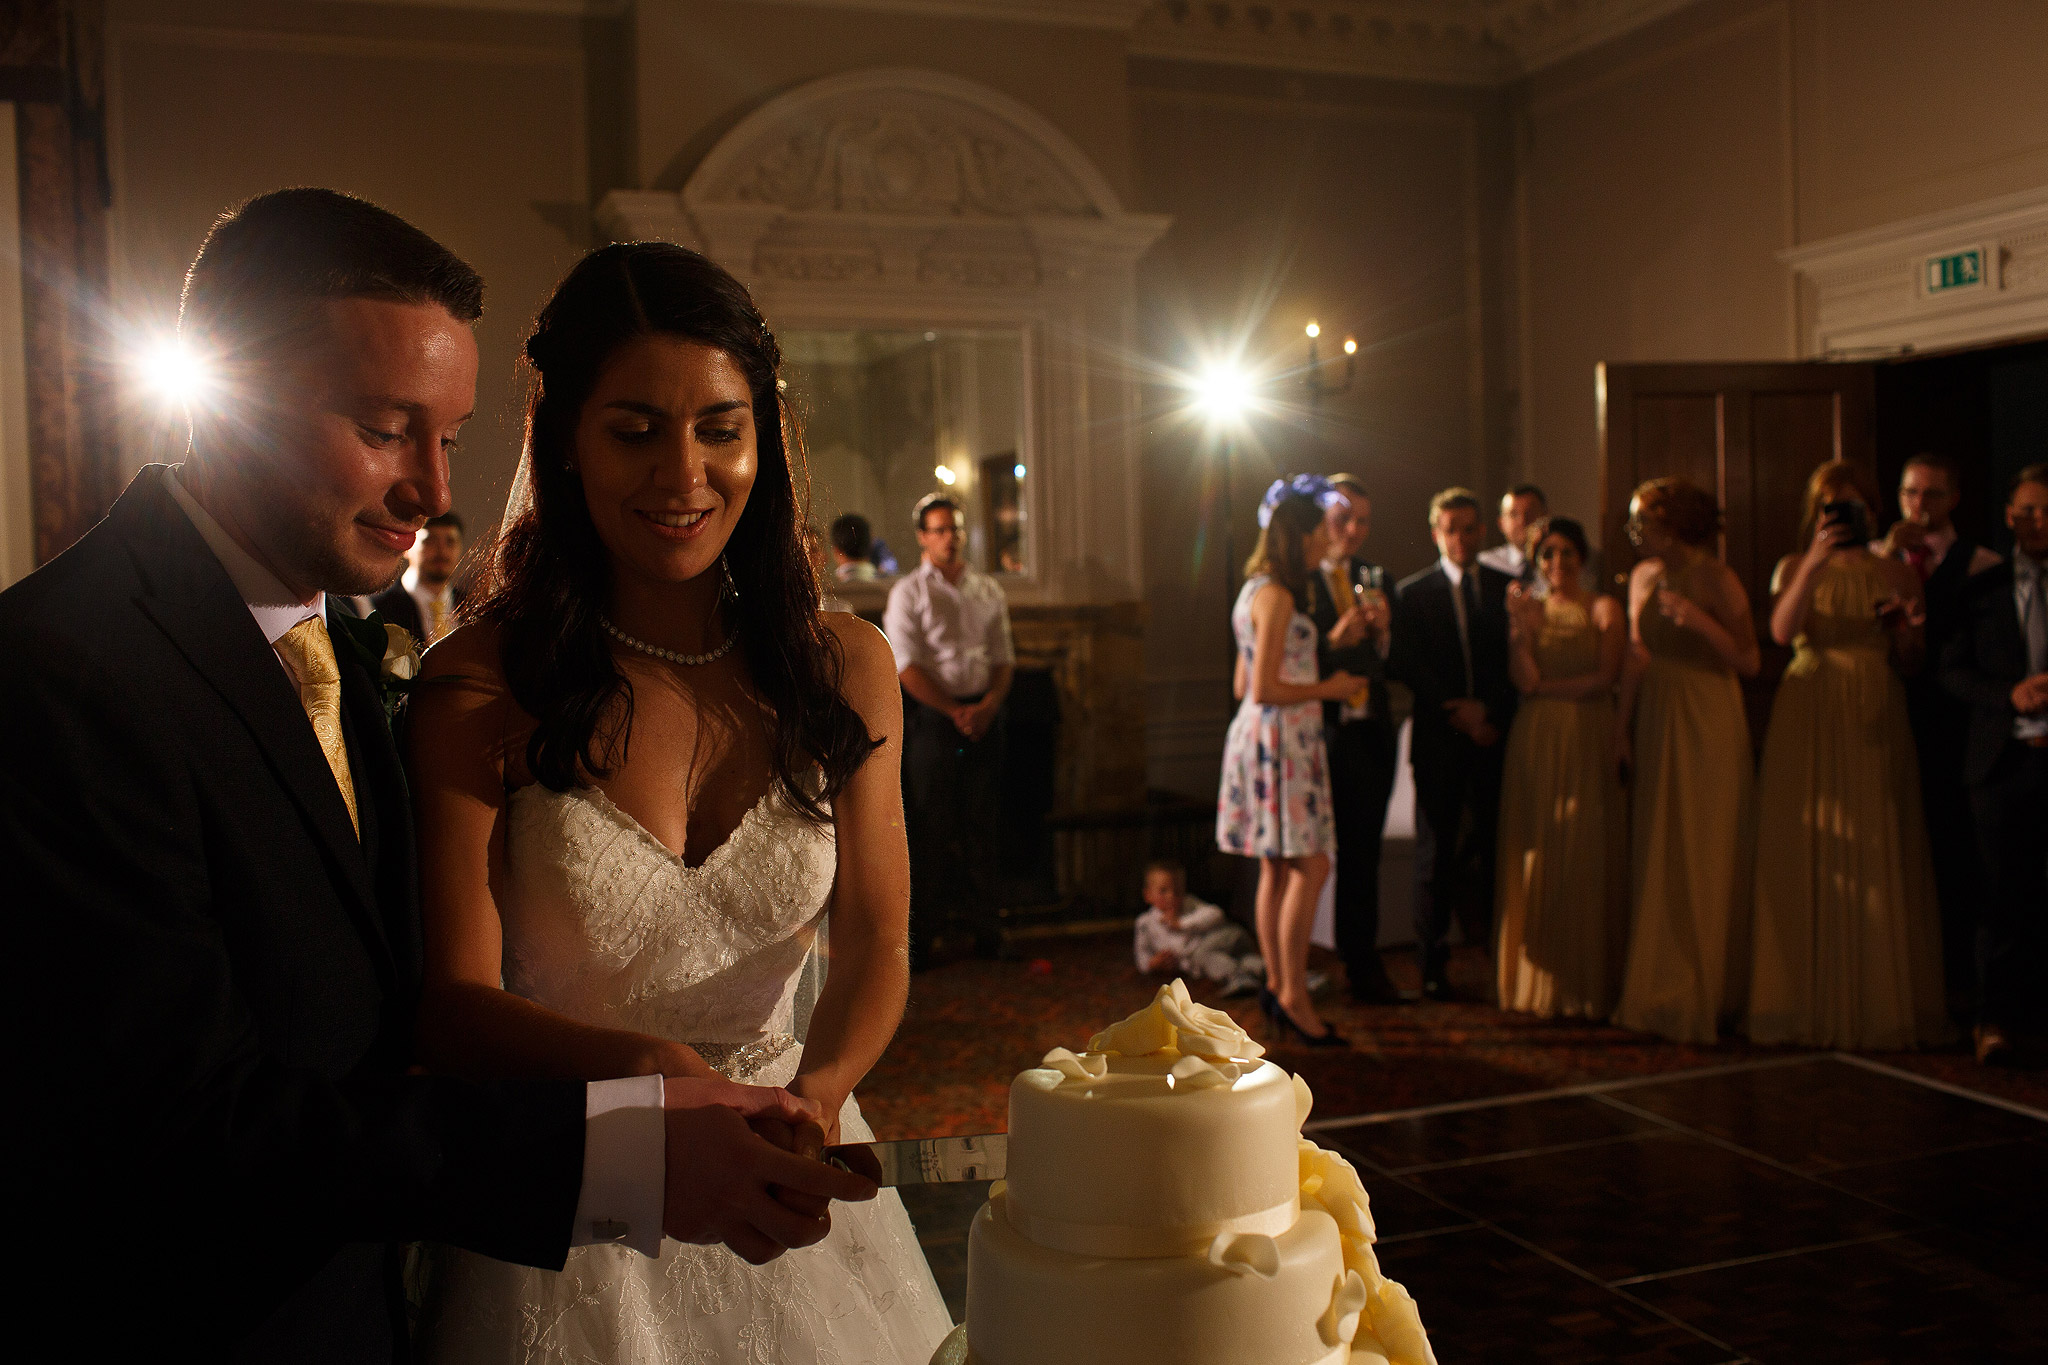 Bride and groom cutting the cake at Crathorne Hall wedding